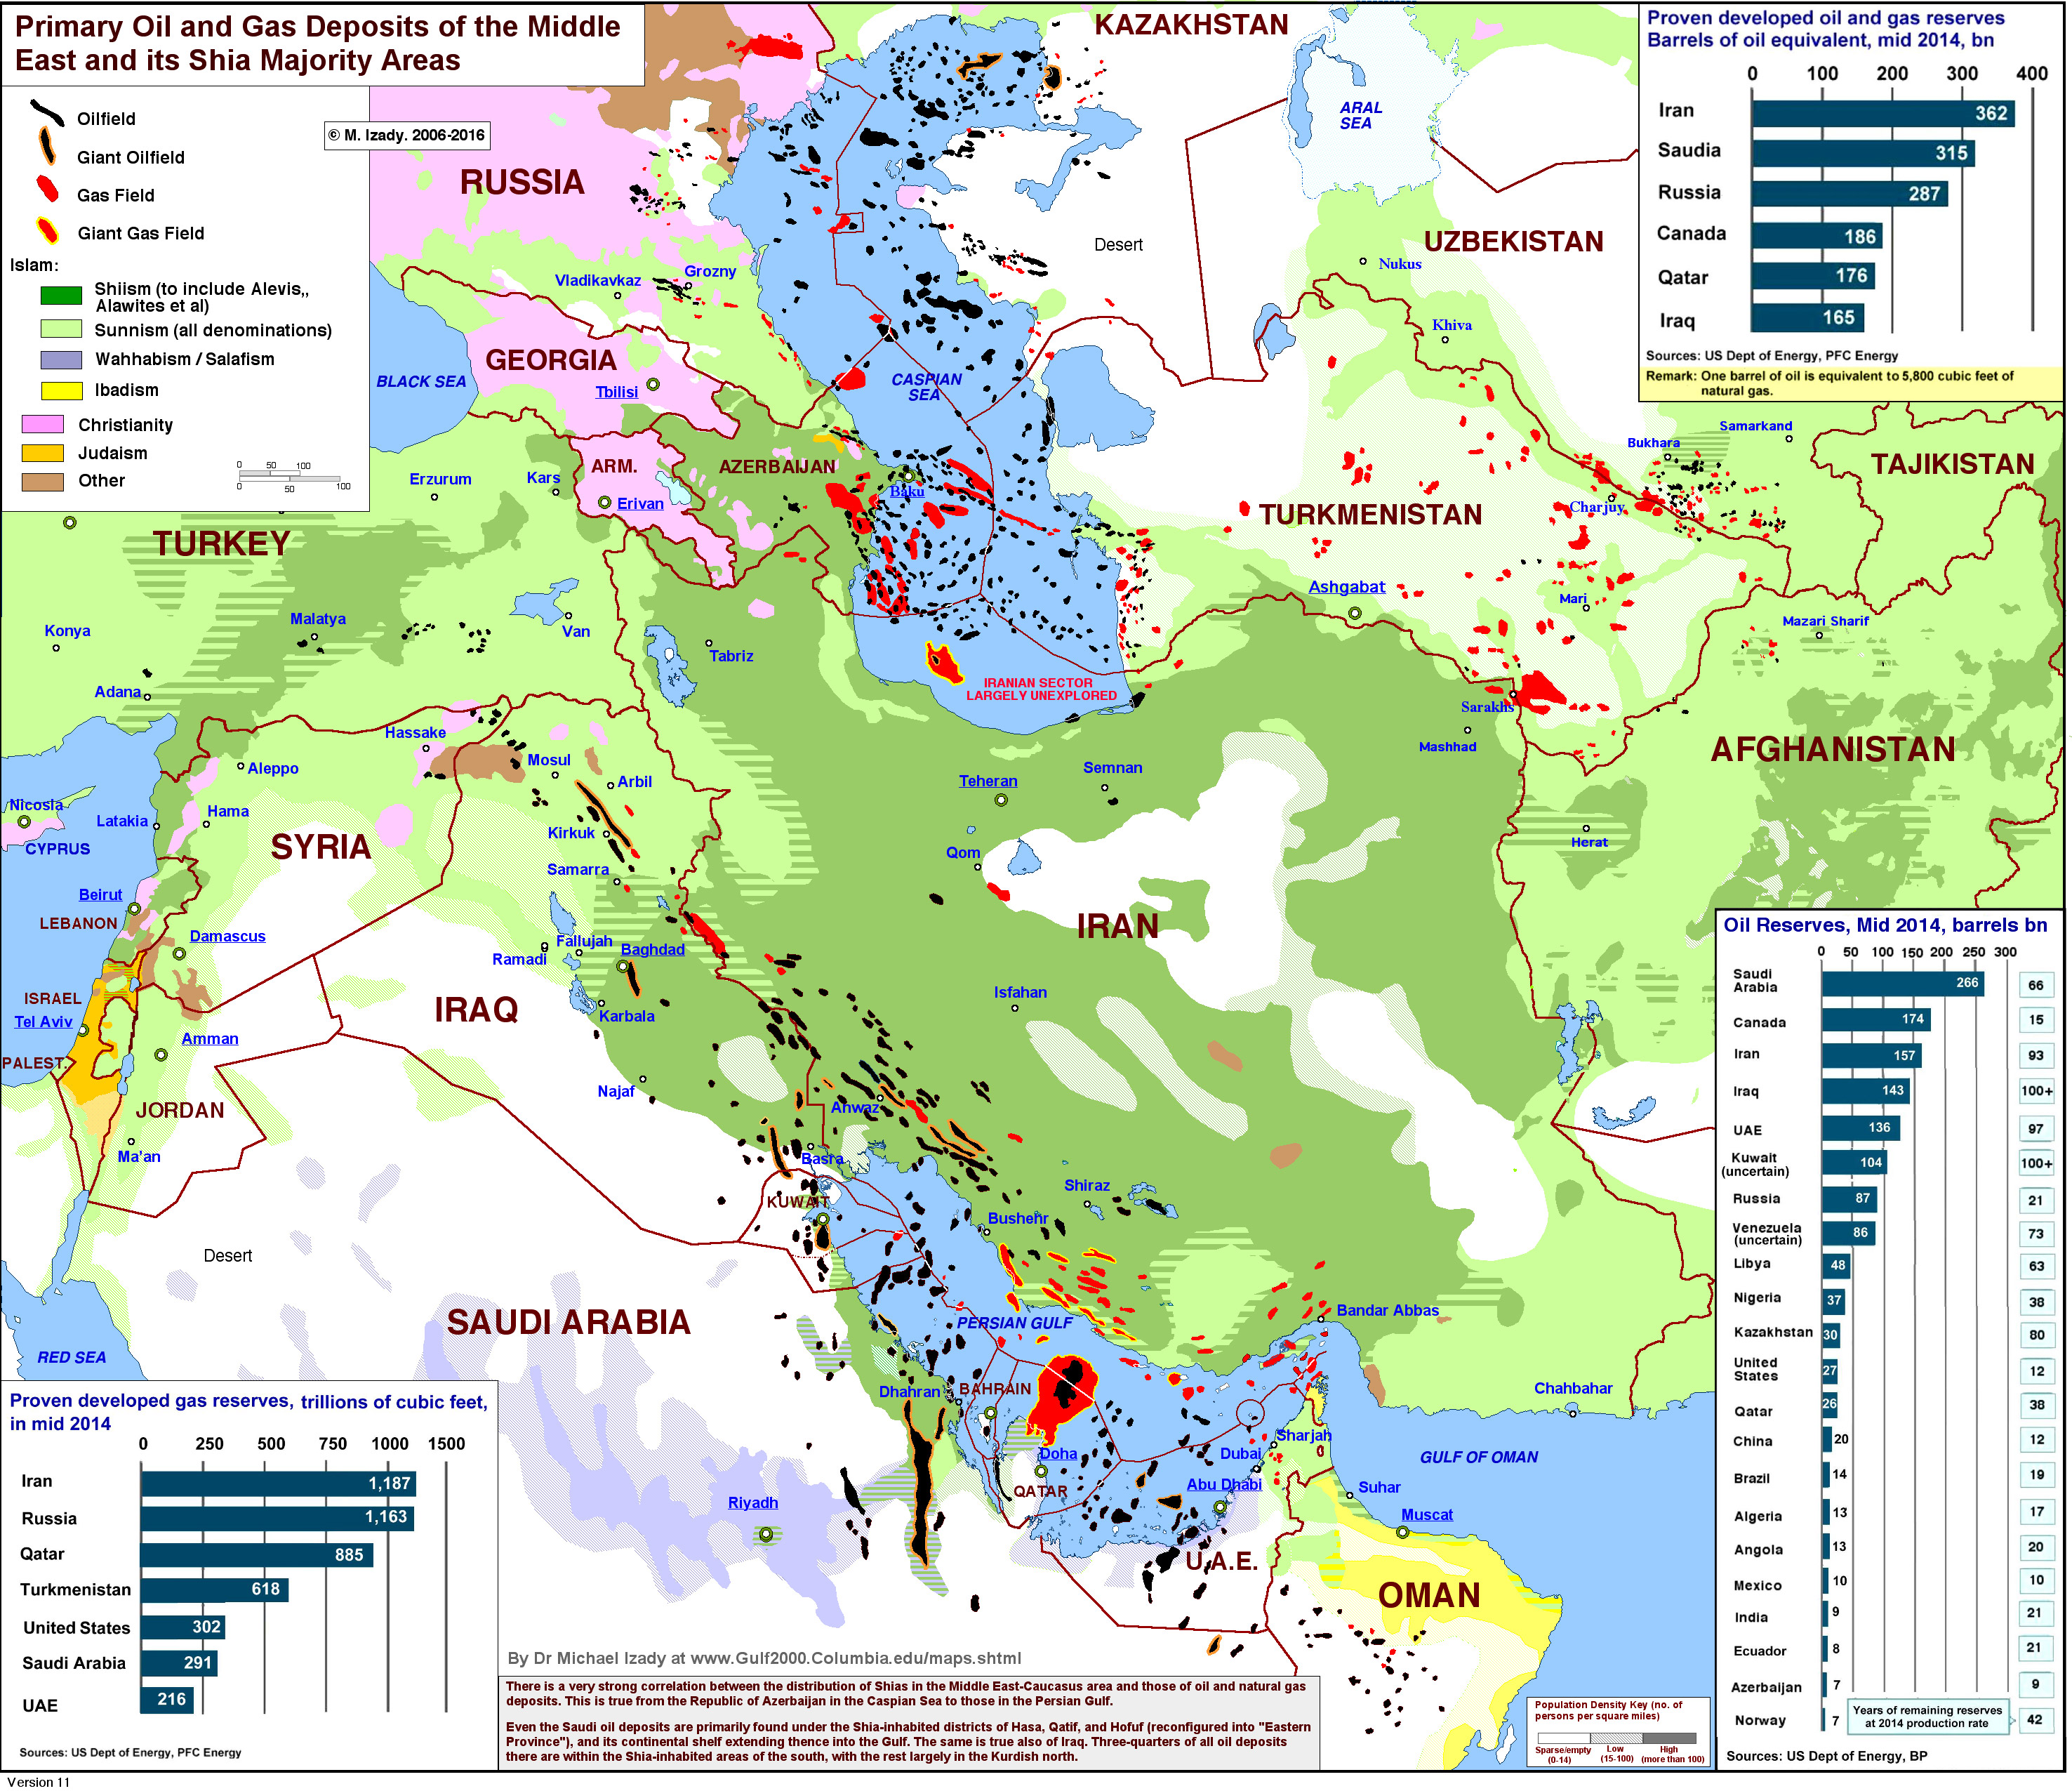 One Map That Explains the Dangerous SaudiIranian Conflict